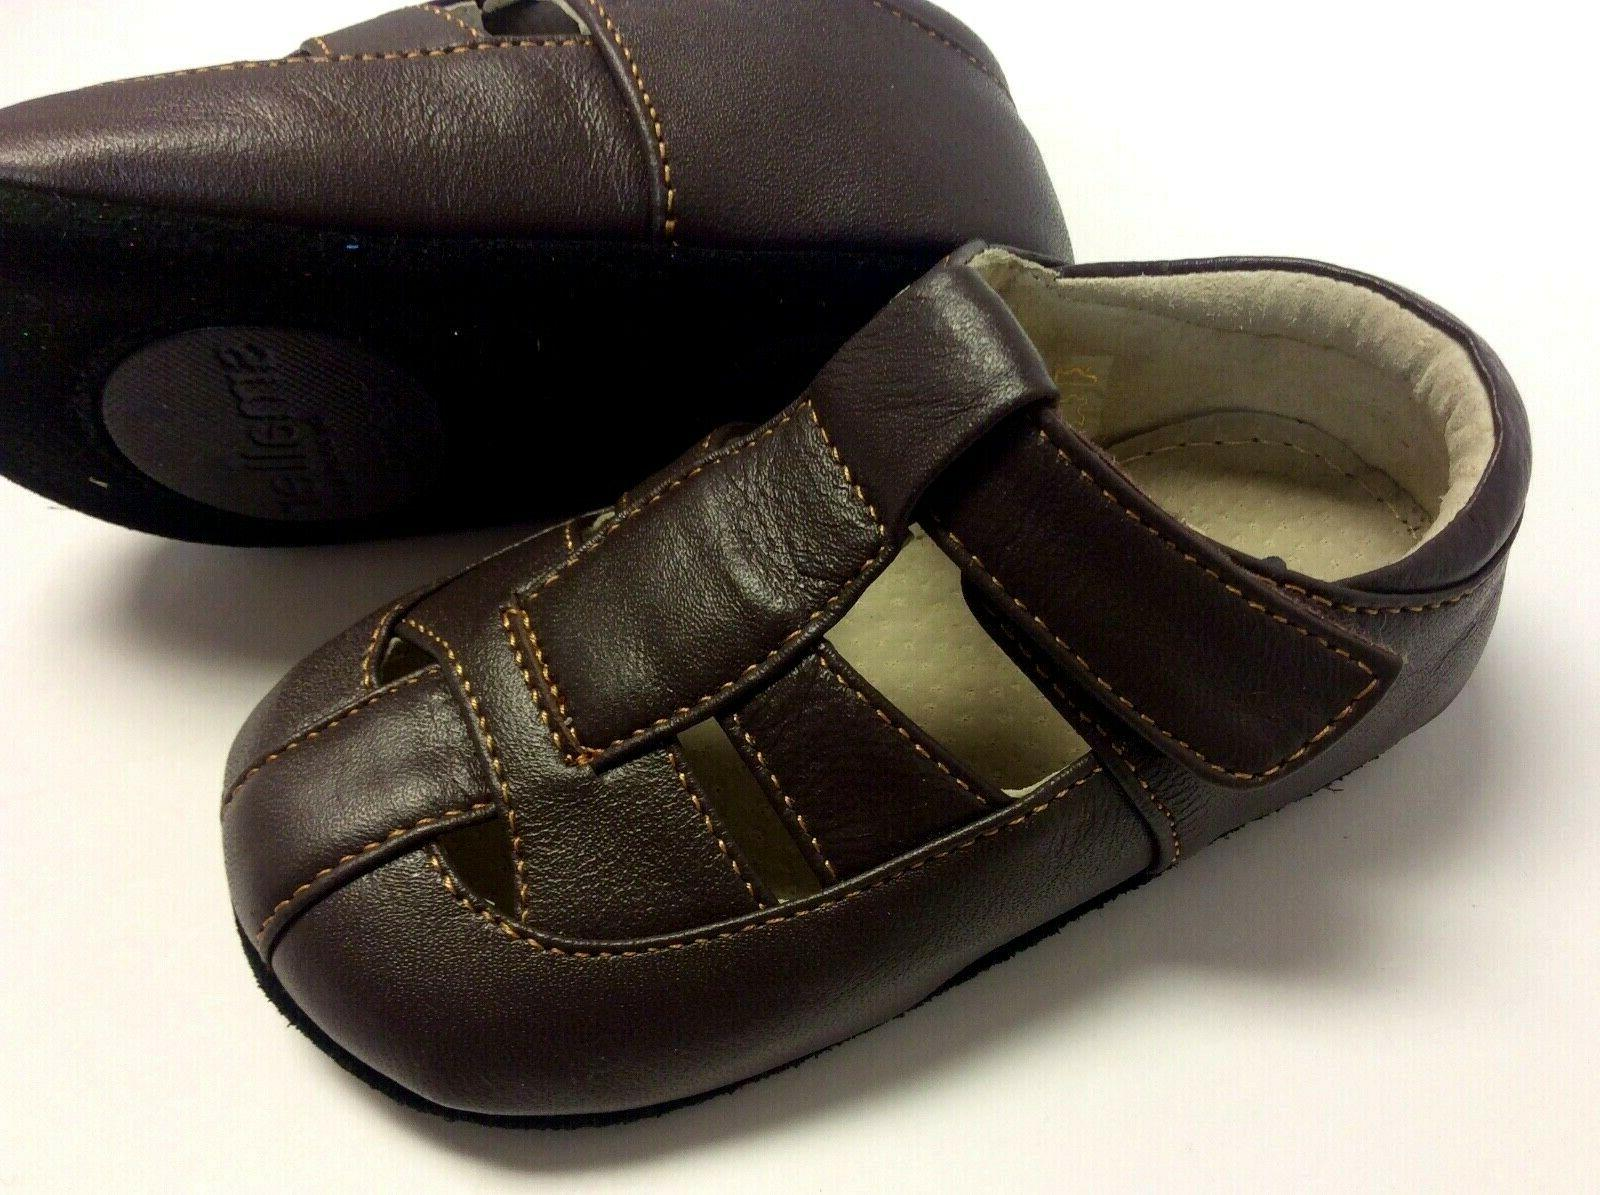 Smaller Run baby leather soft 18-24m